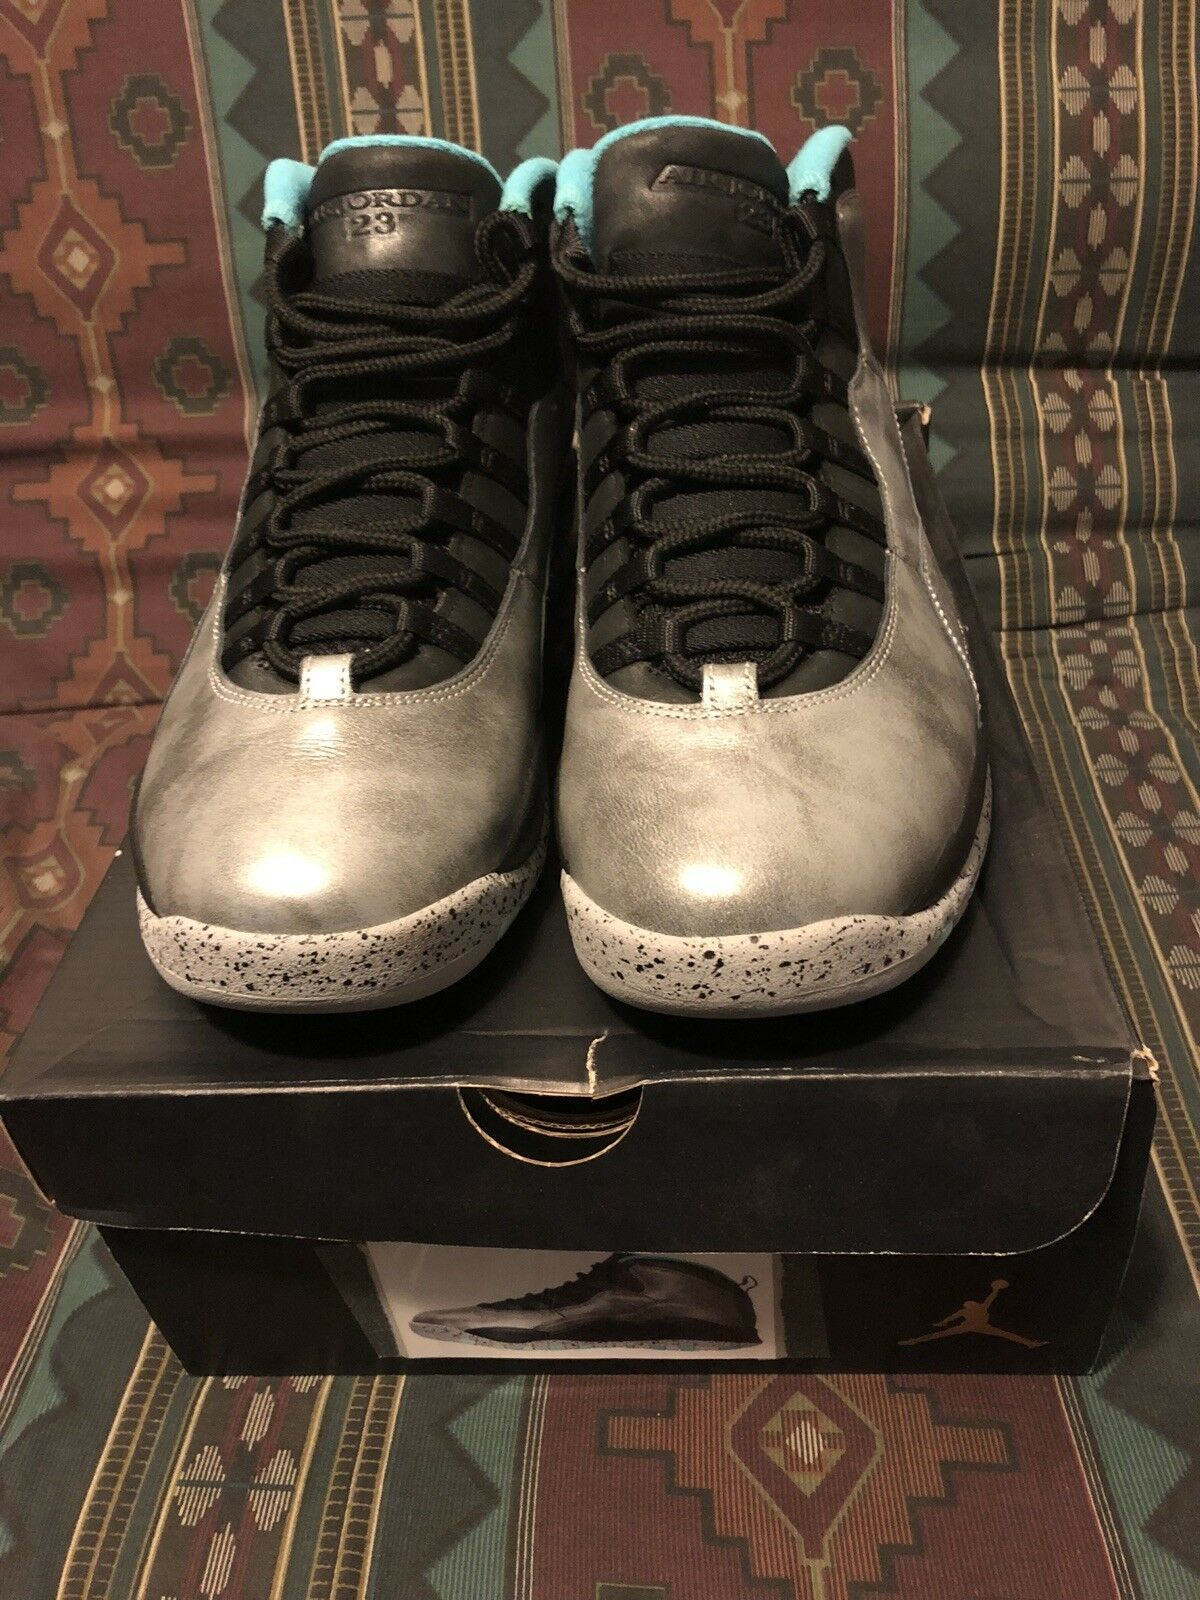 Jordan 10 Lady Liberty Size 10